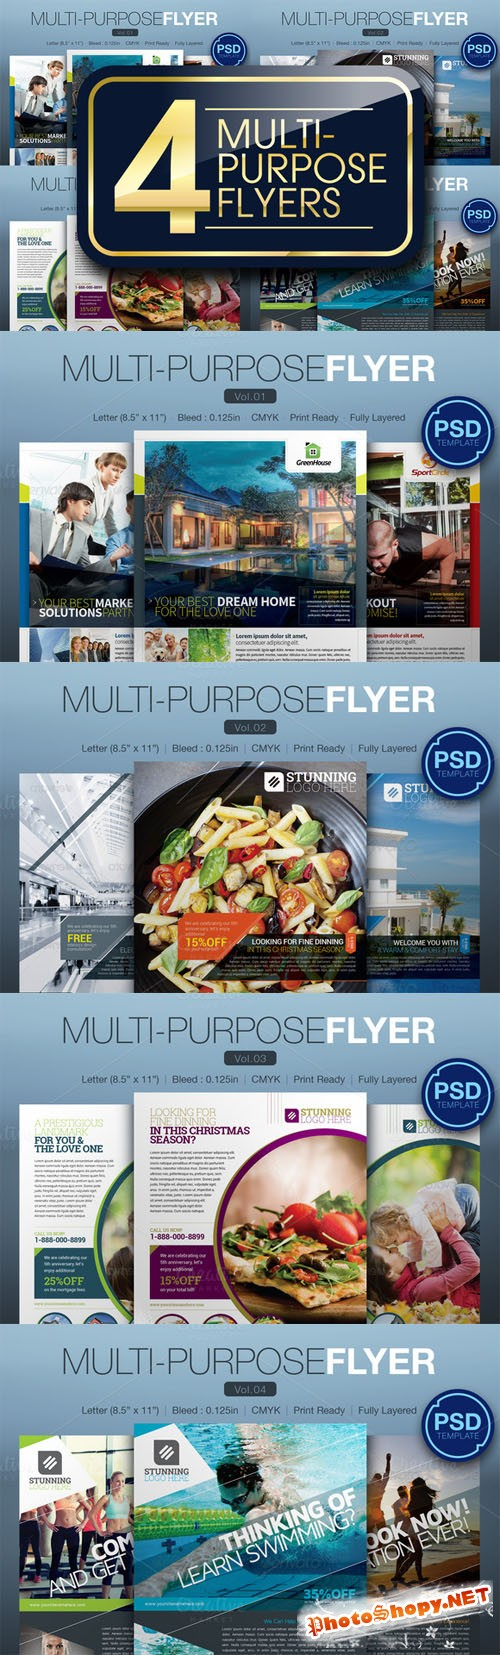 Multipurpose Flyer Bundle - Creativemarket 166234